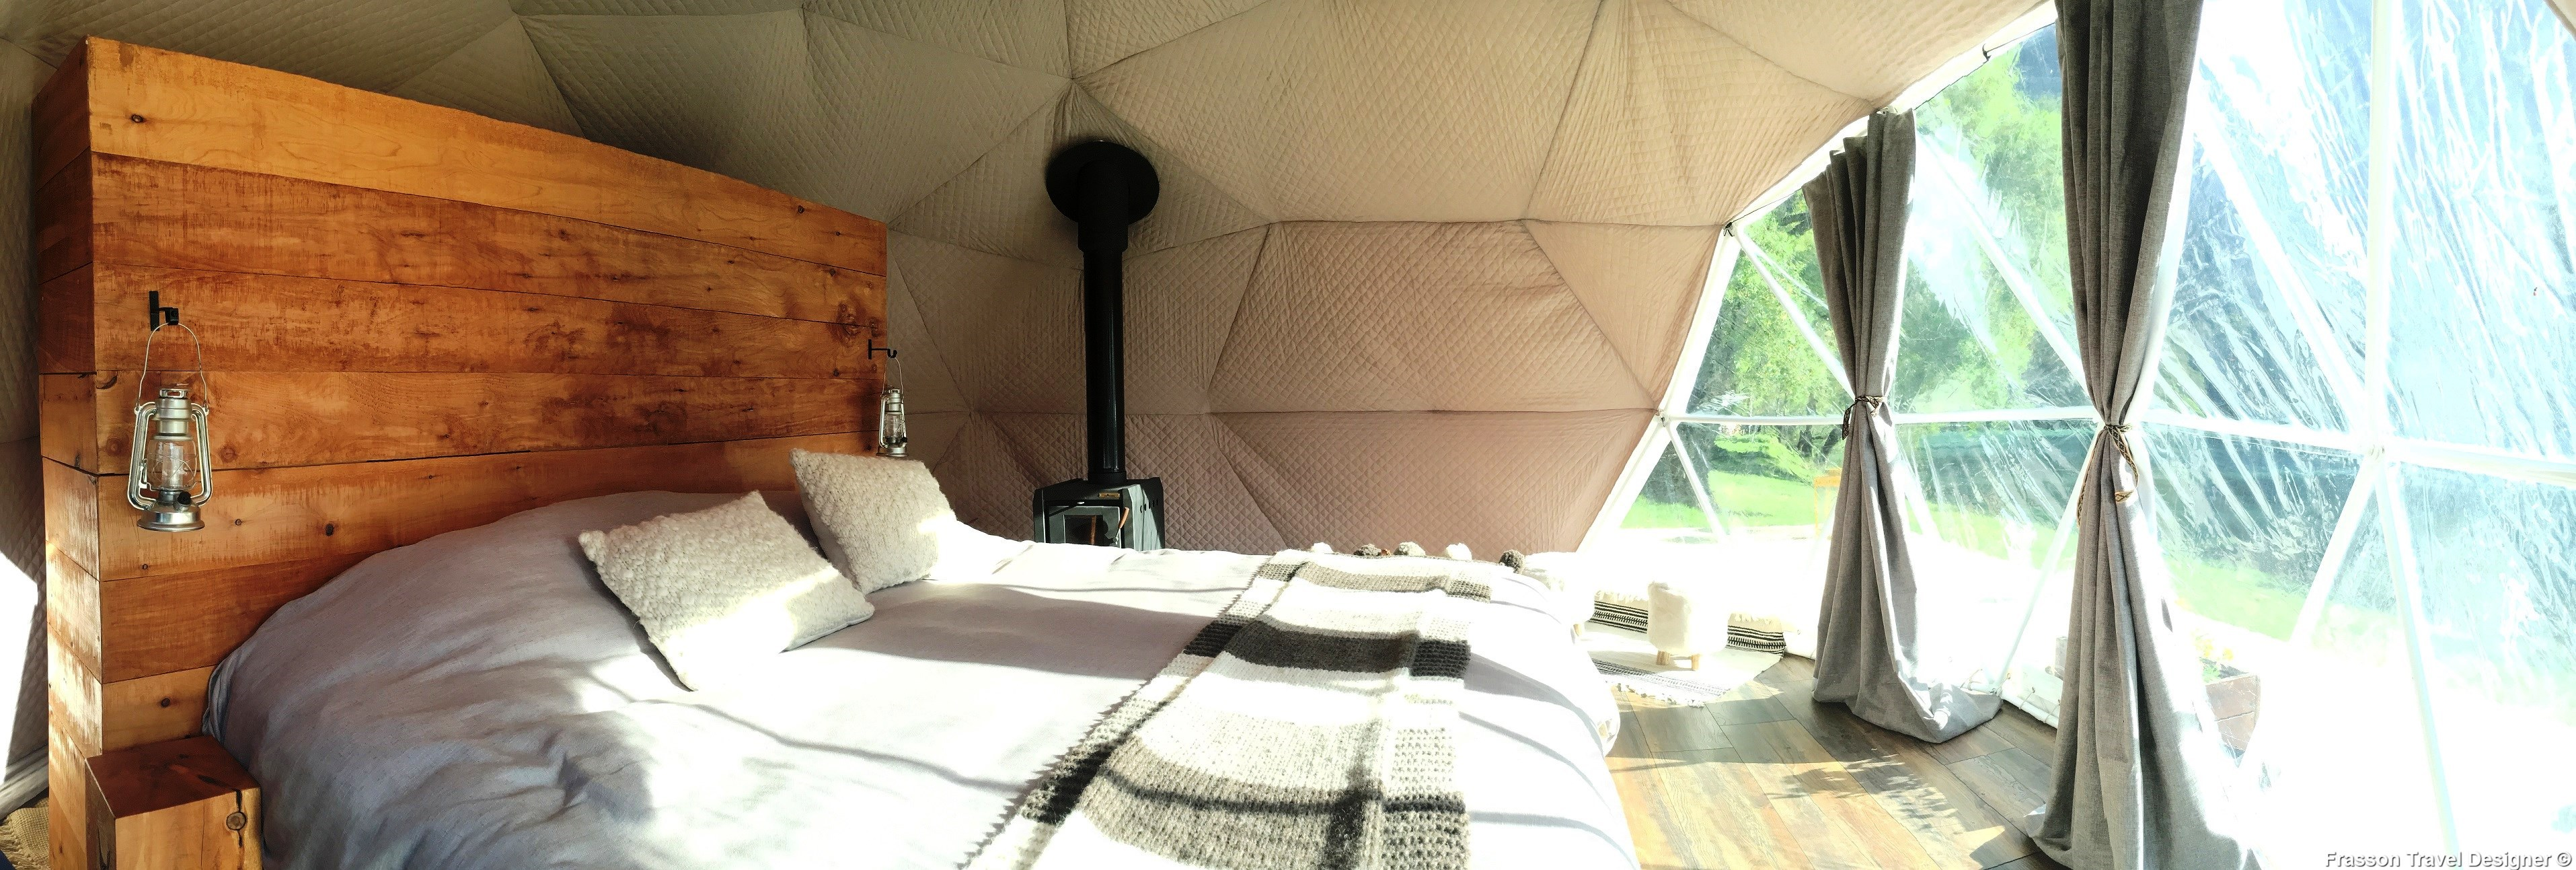 Glamping in Bariloche, Patagonia luxury camps